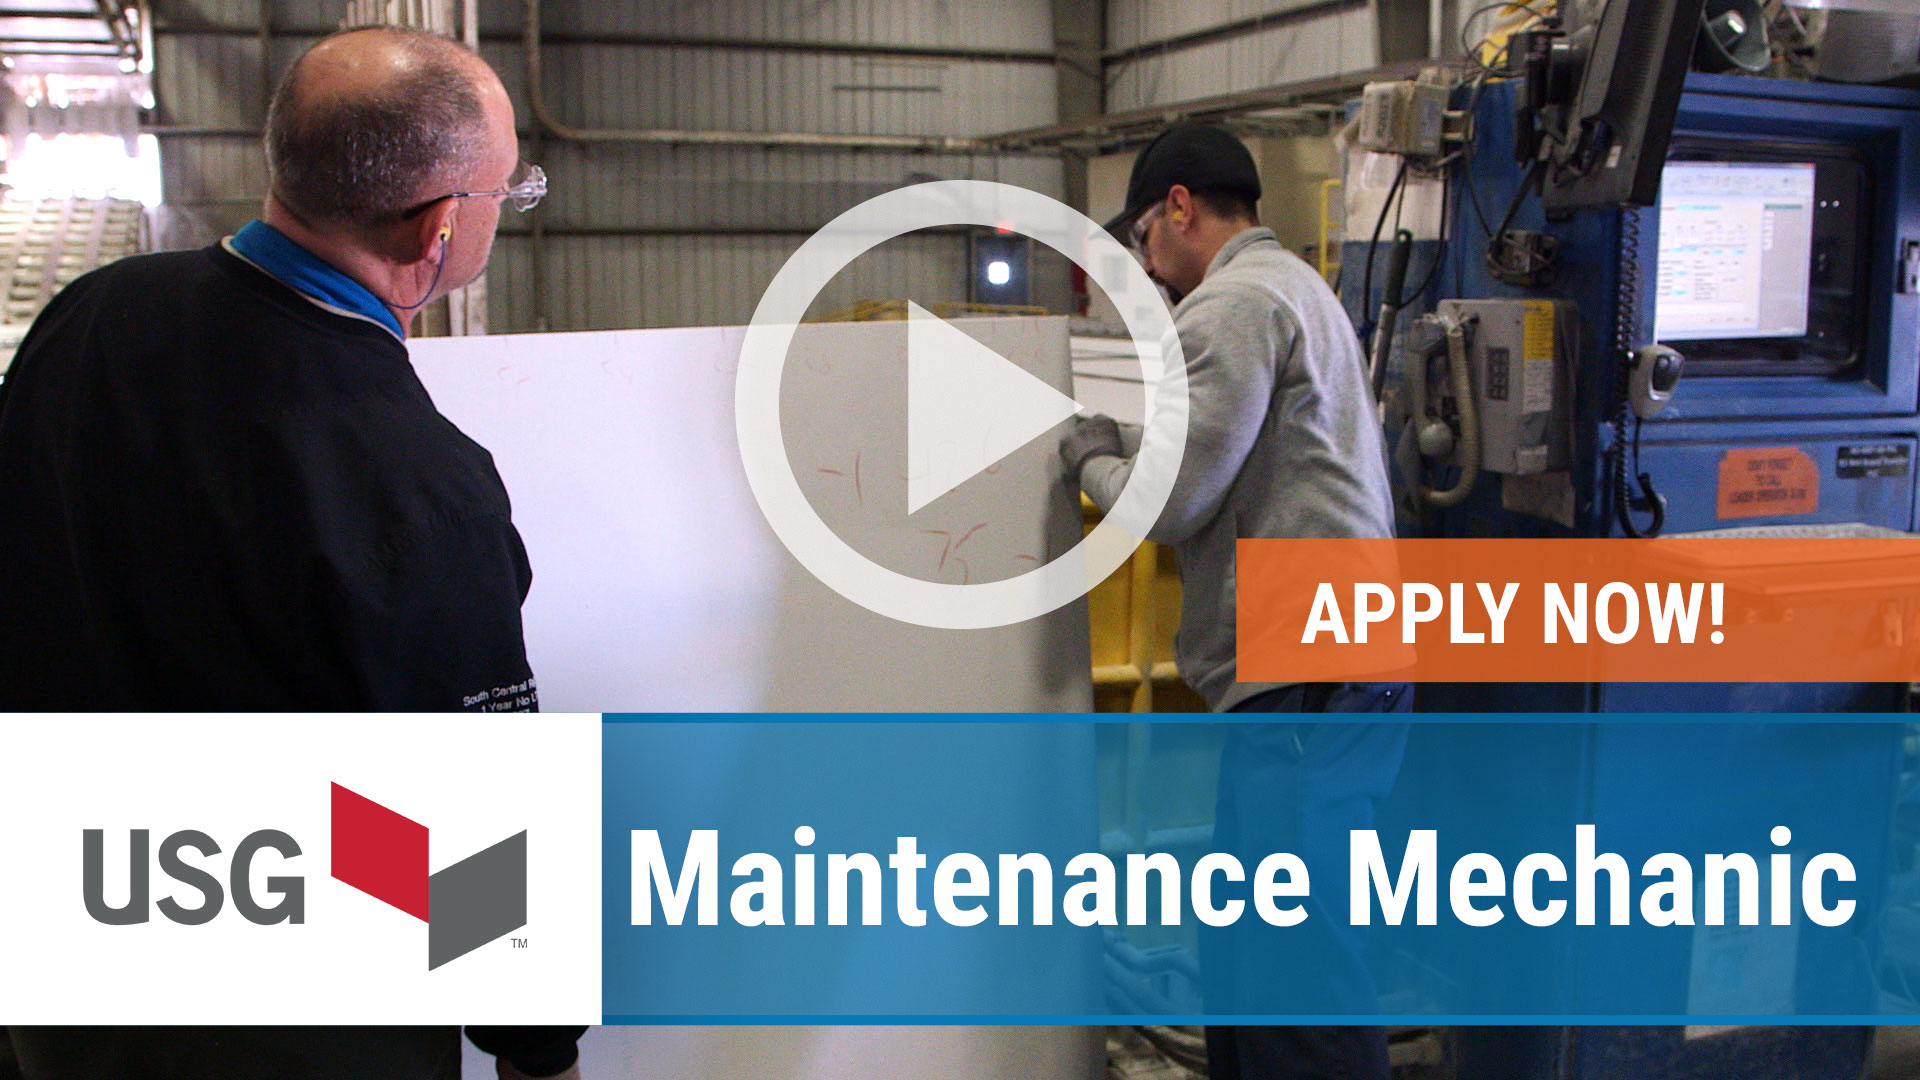 Watch our careers video for available job opening Maintenance Mechanic in Jacksonville, FL, USA